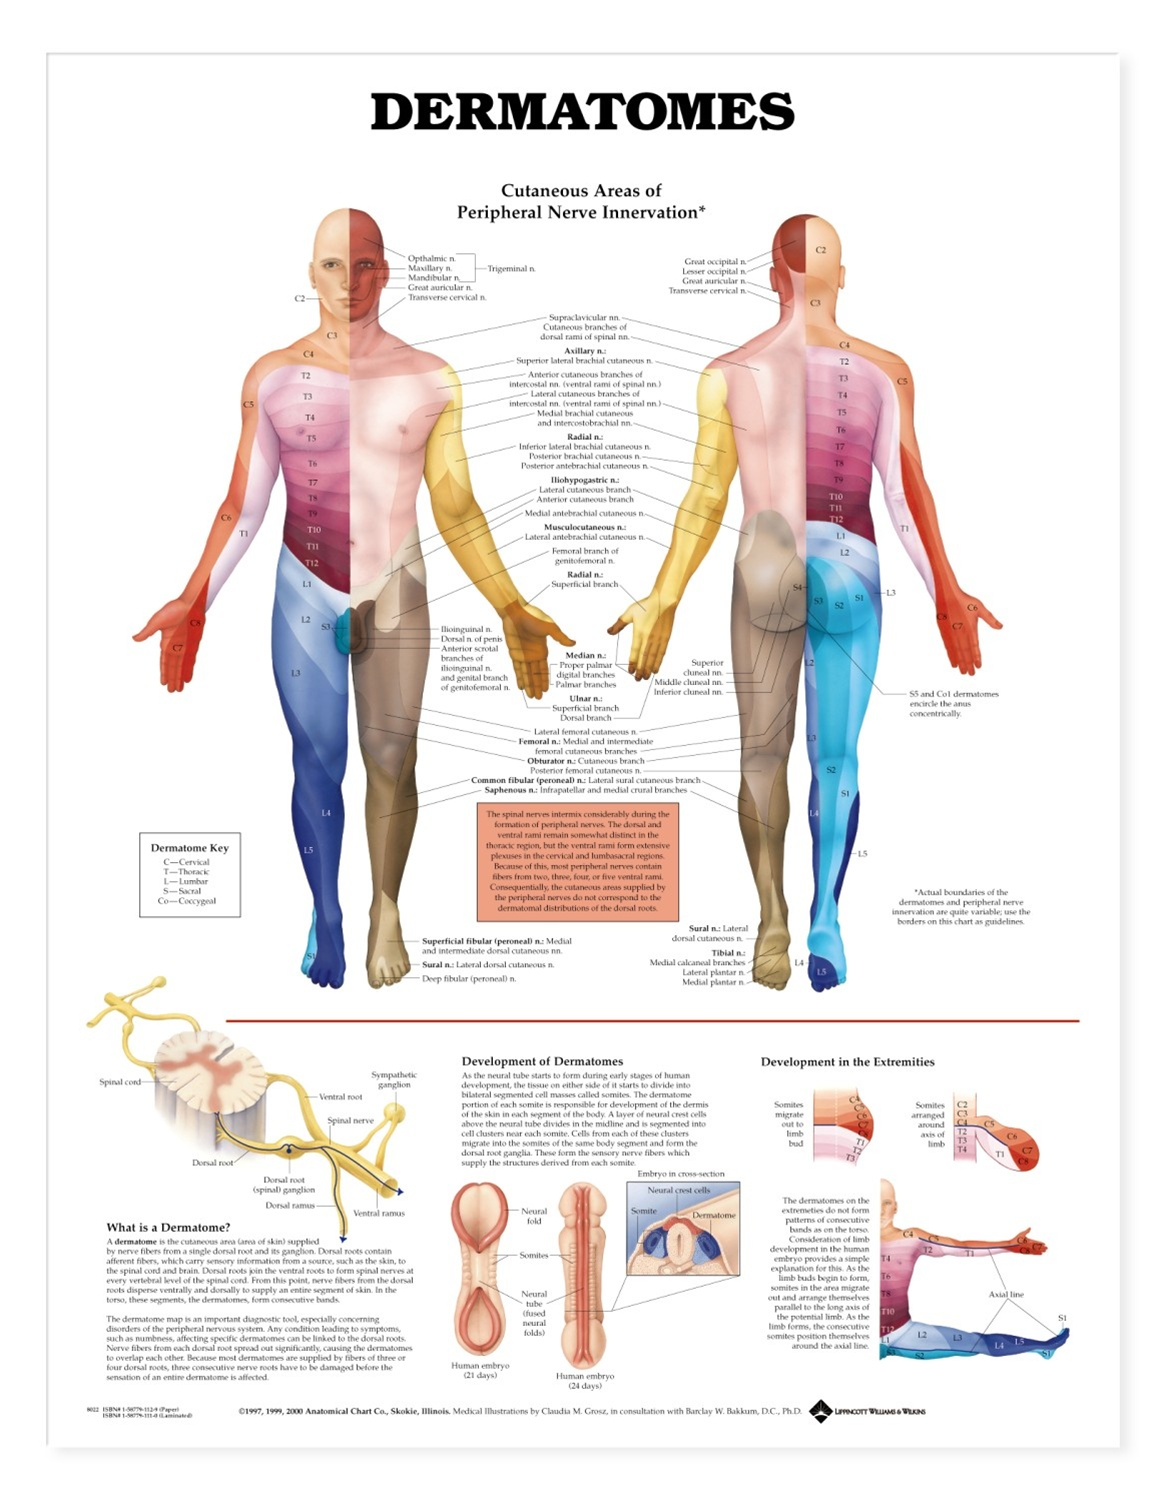 Human Dermatomes Anatomical Chart - Anatomy Models and Anatomical Charts